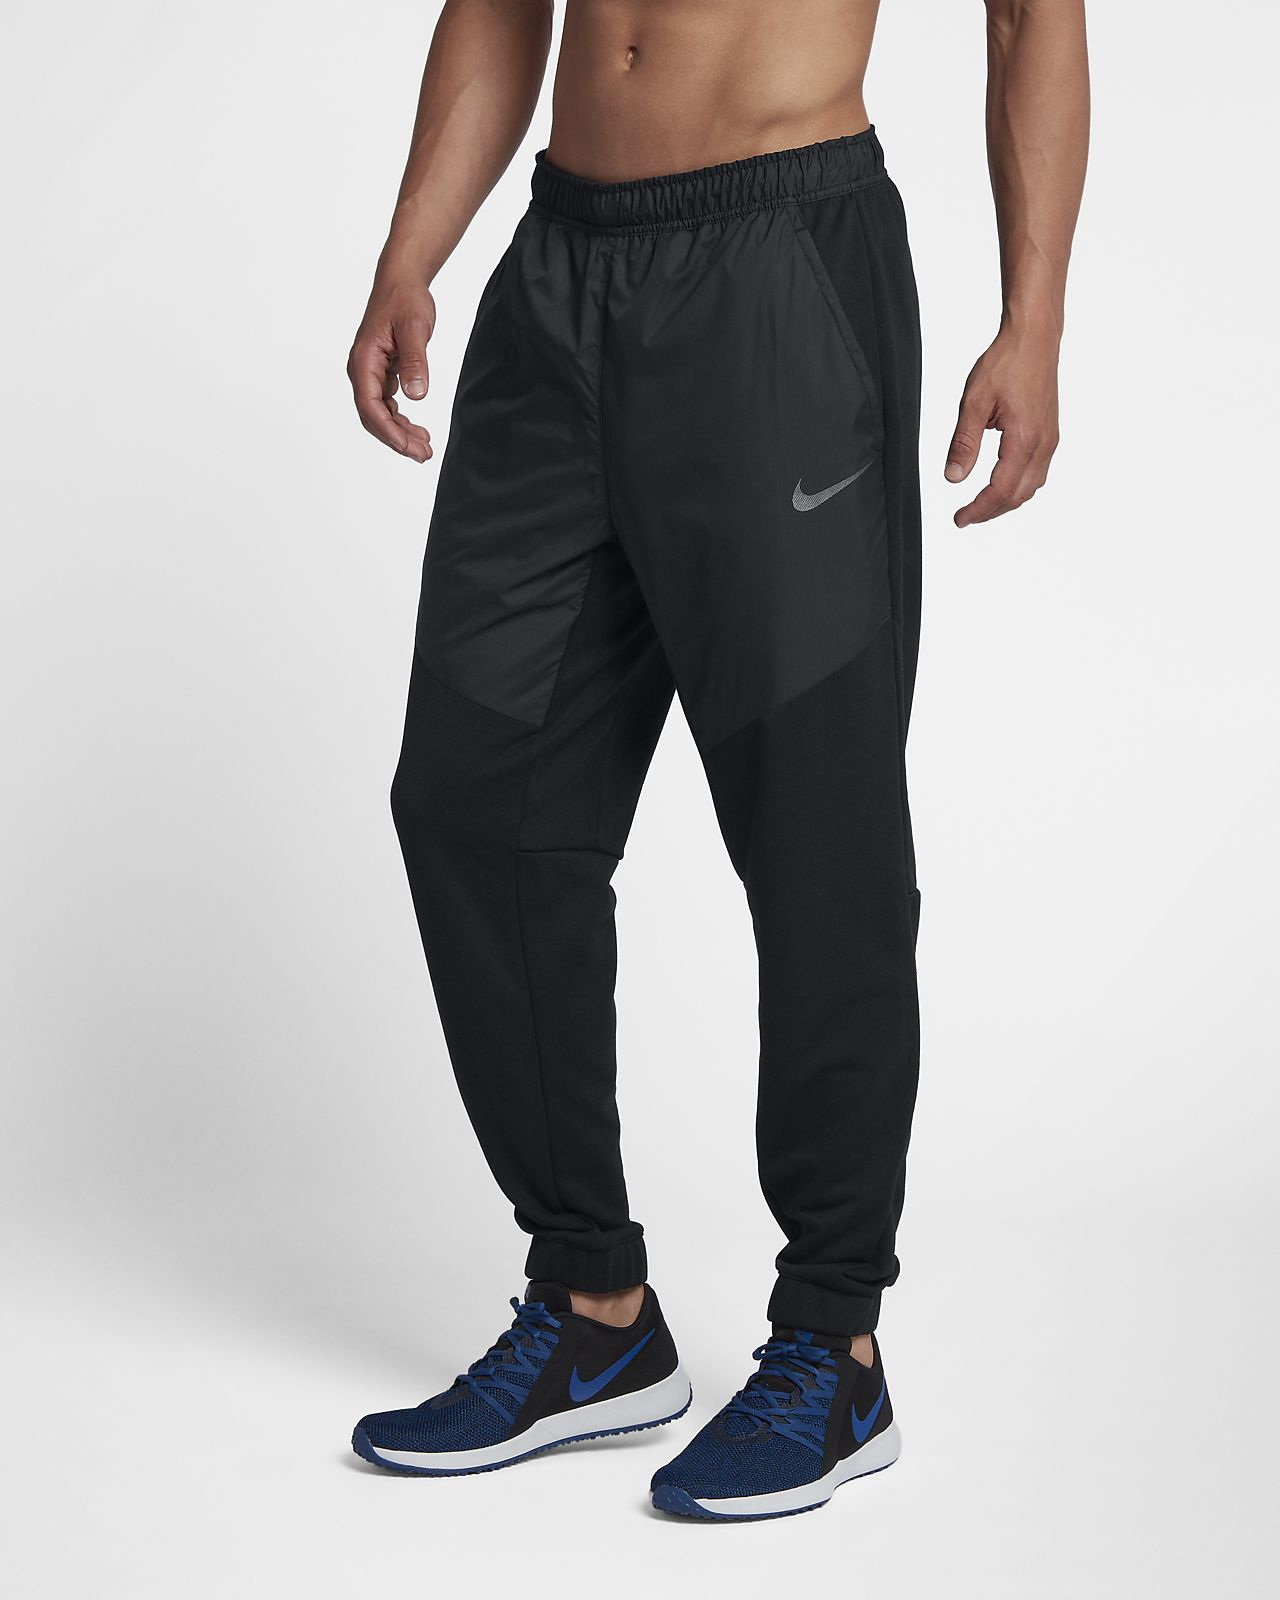 Nike Dri-FIT  Men's Utility Fleece Training Pants